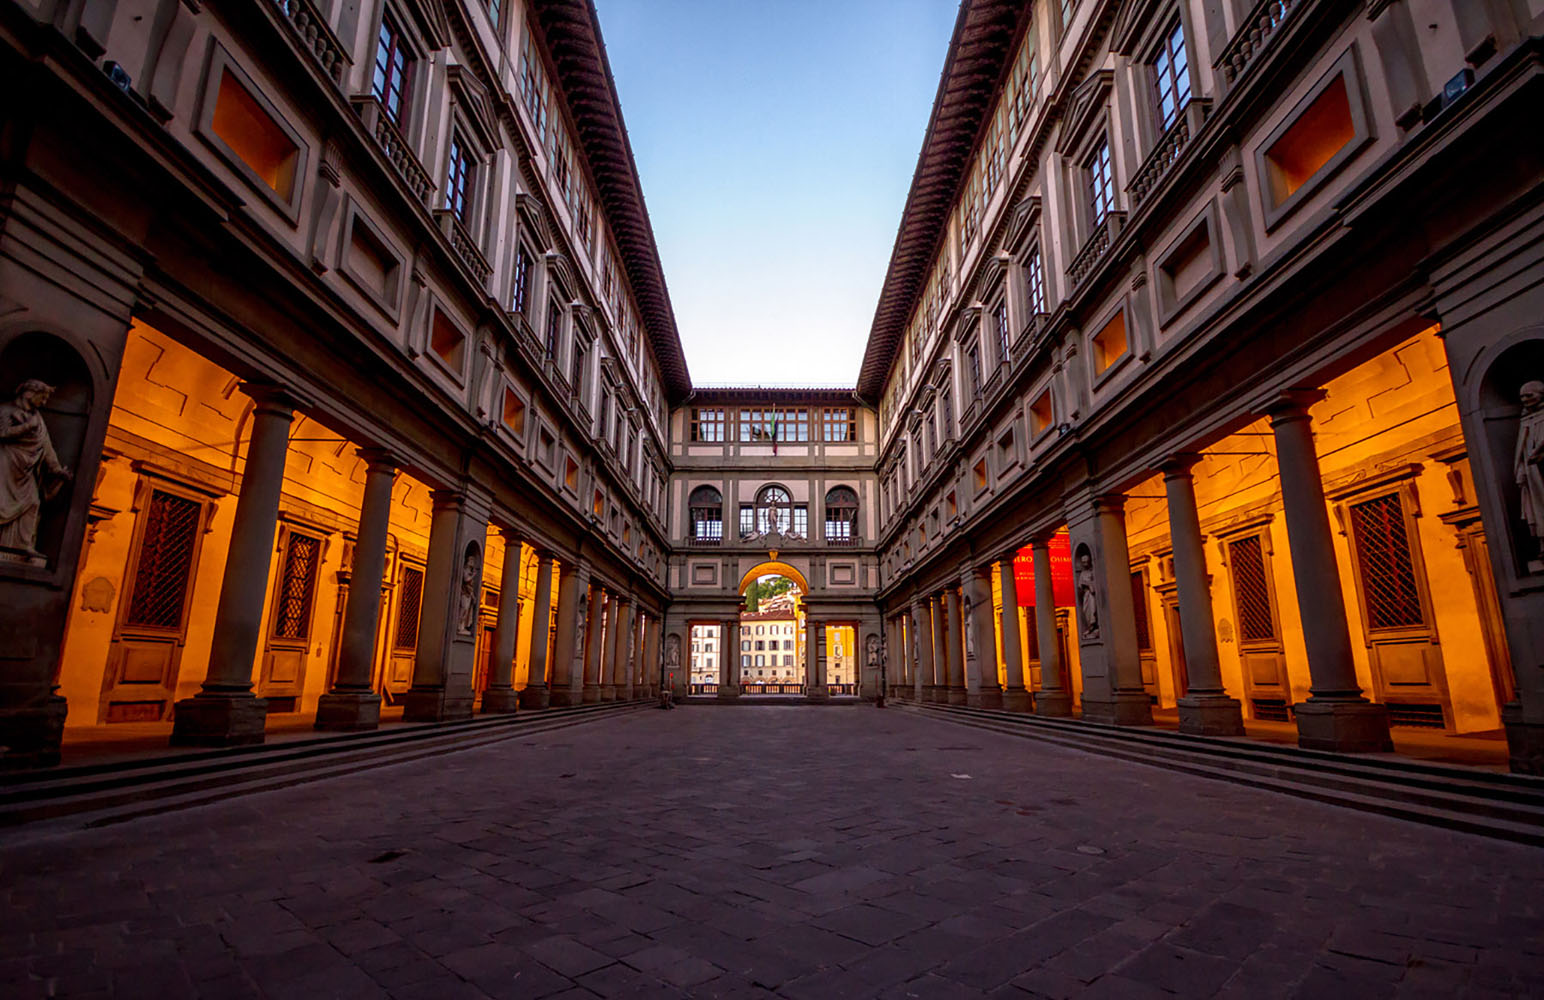 The Uffizi Gallery in Florence is illuminated at night.